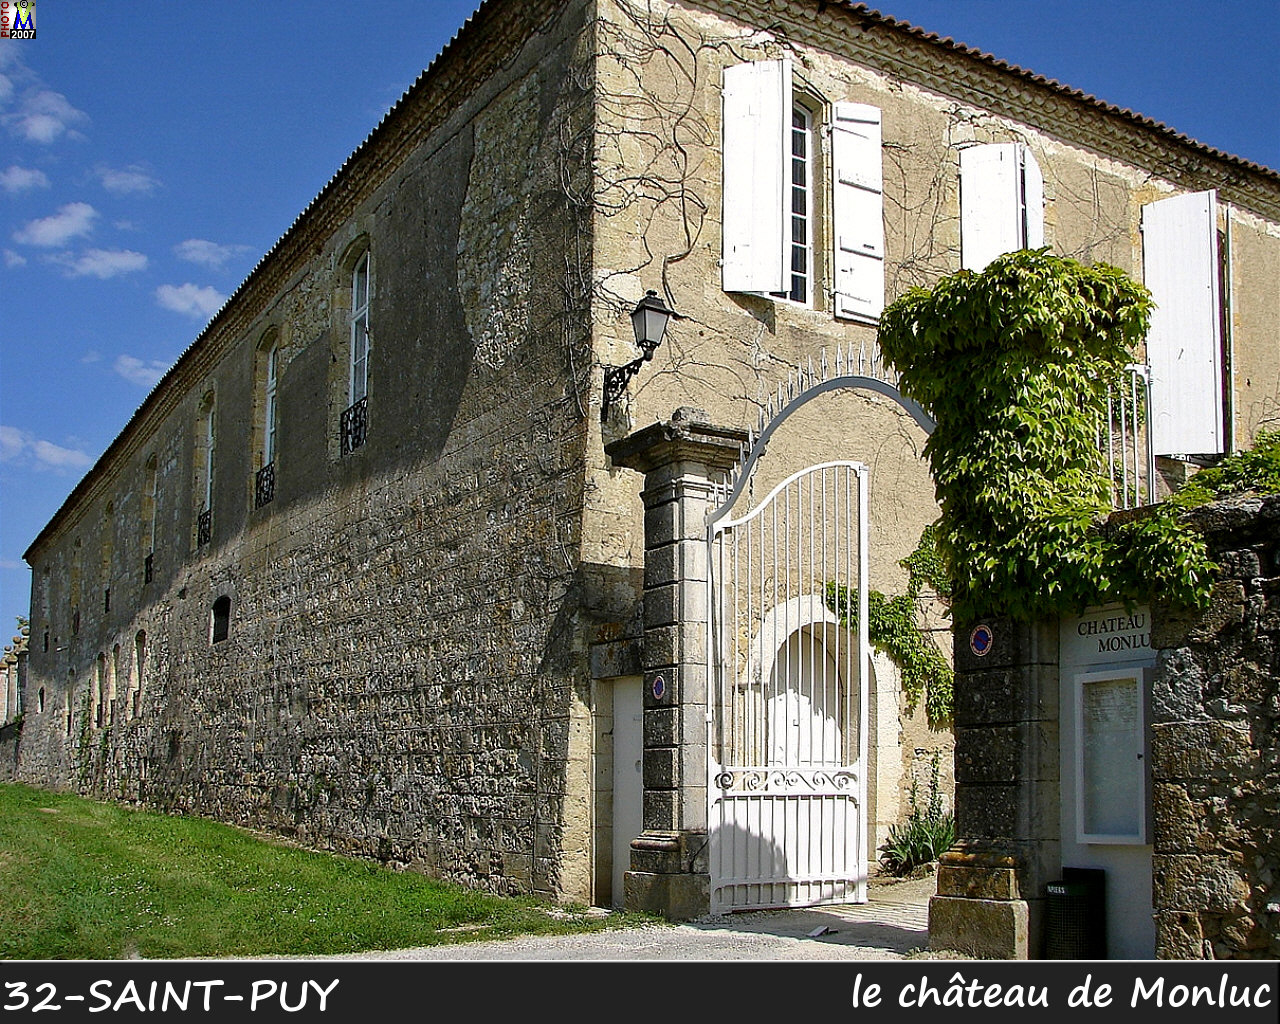 32St-PUY_chateau_104.jpg